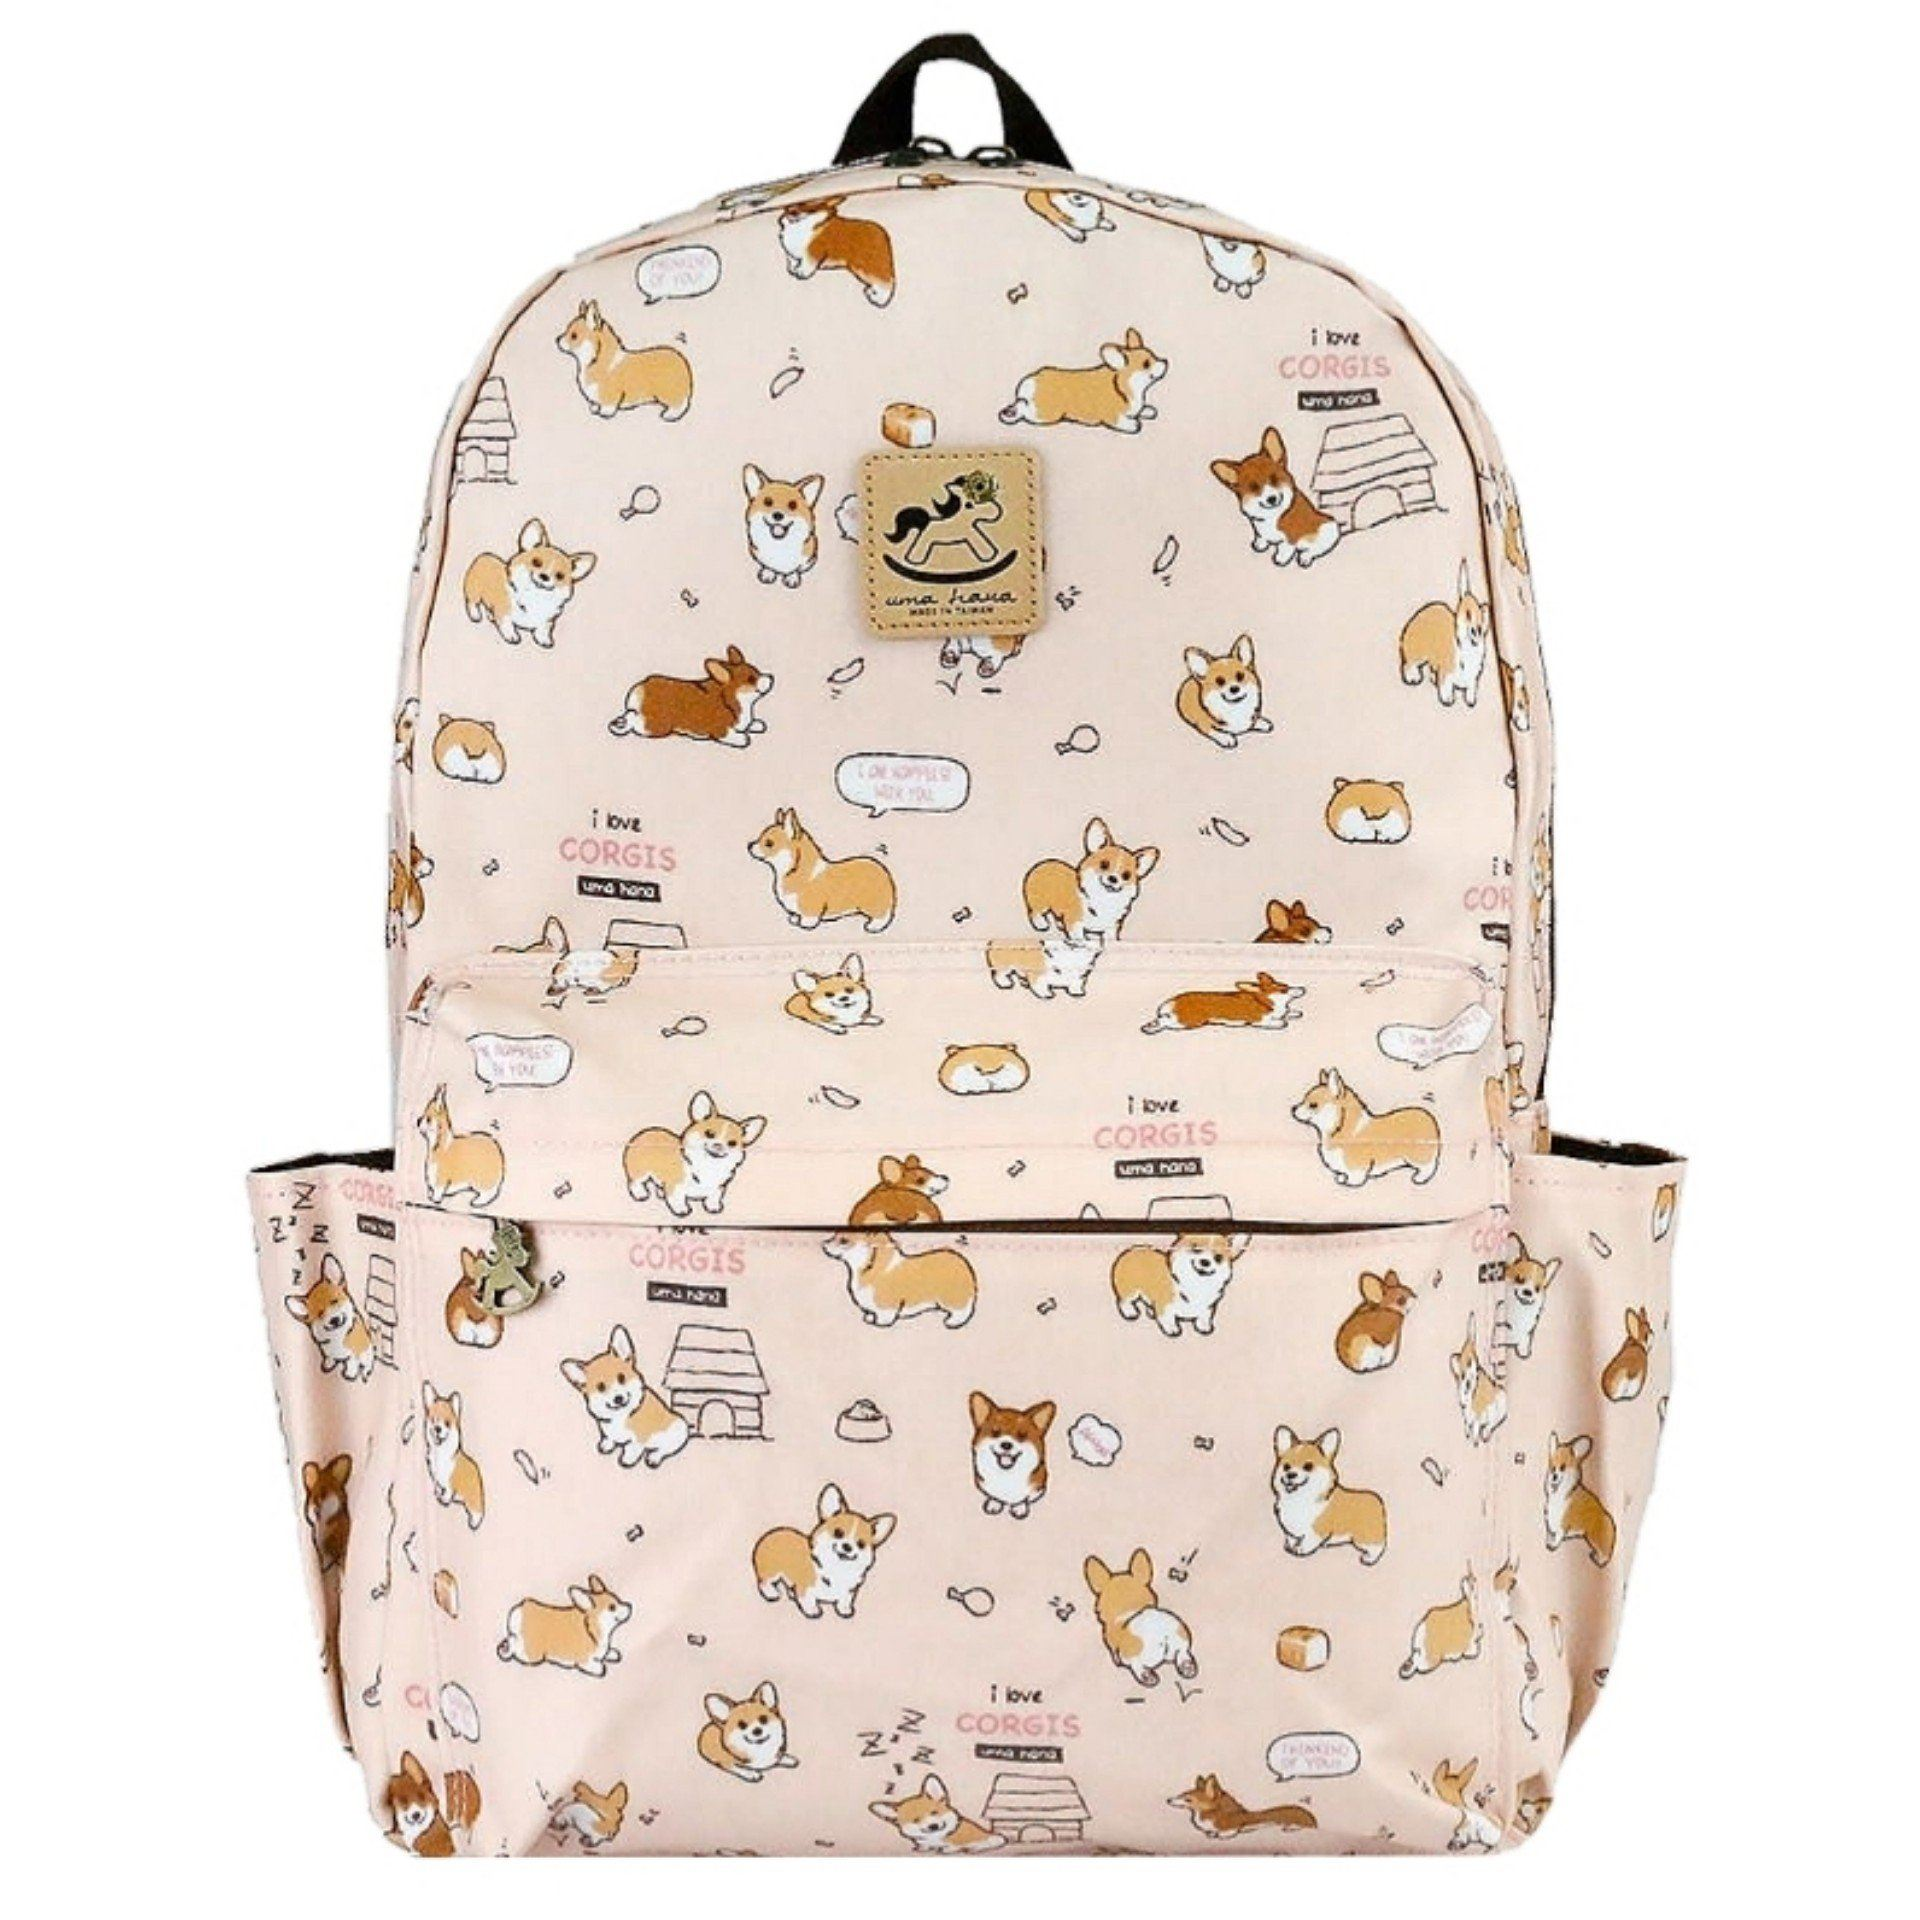 Peach Corgi Puppy Large Backpack Backpack Tworgis